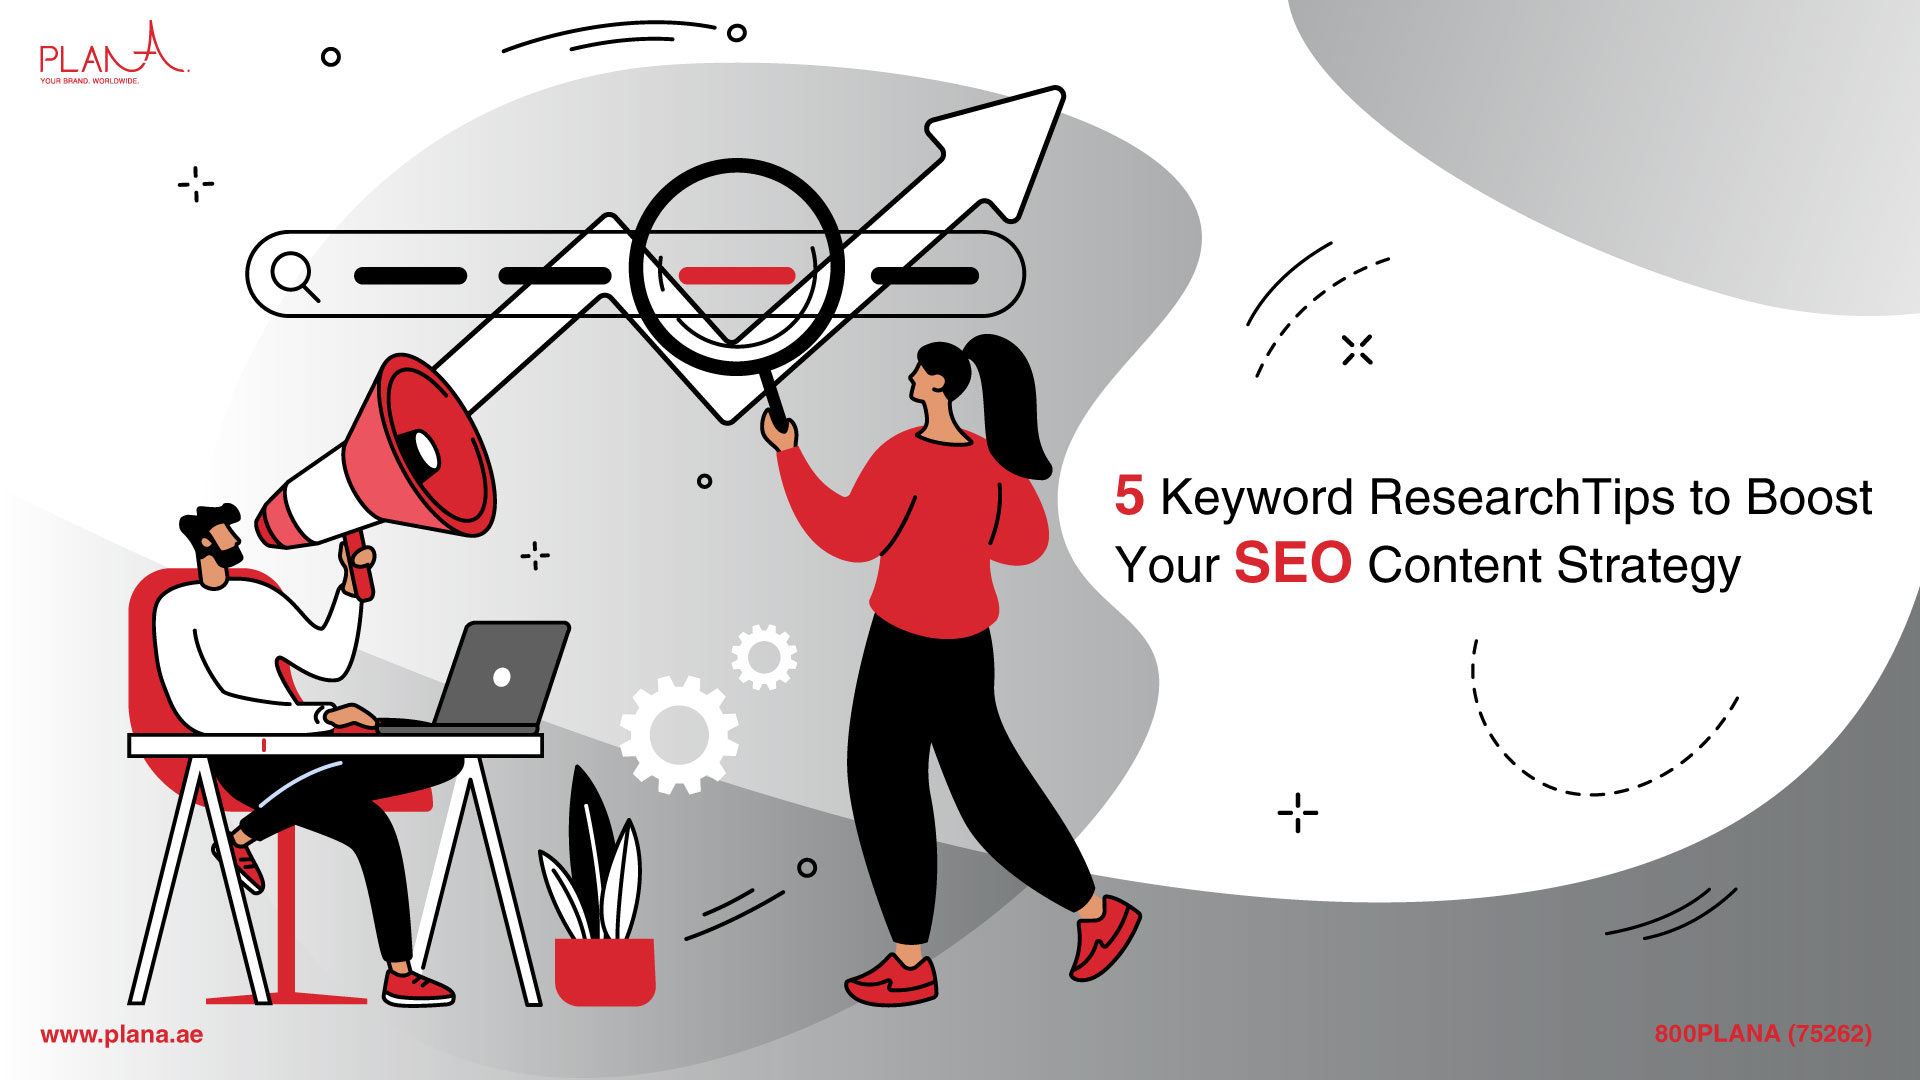 5 Keyword Research Tips to Boost Your SEO Content Strategy